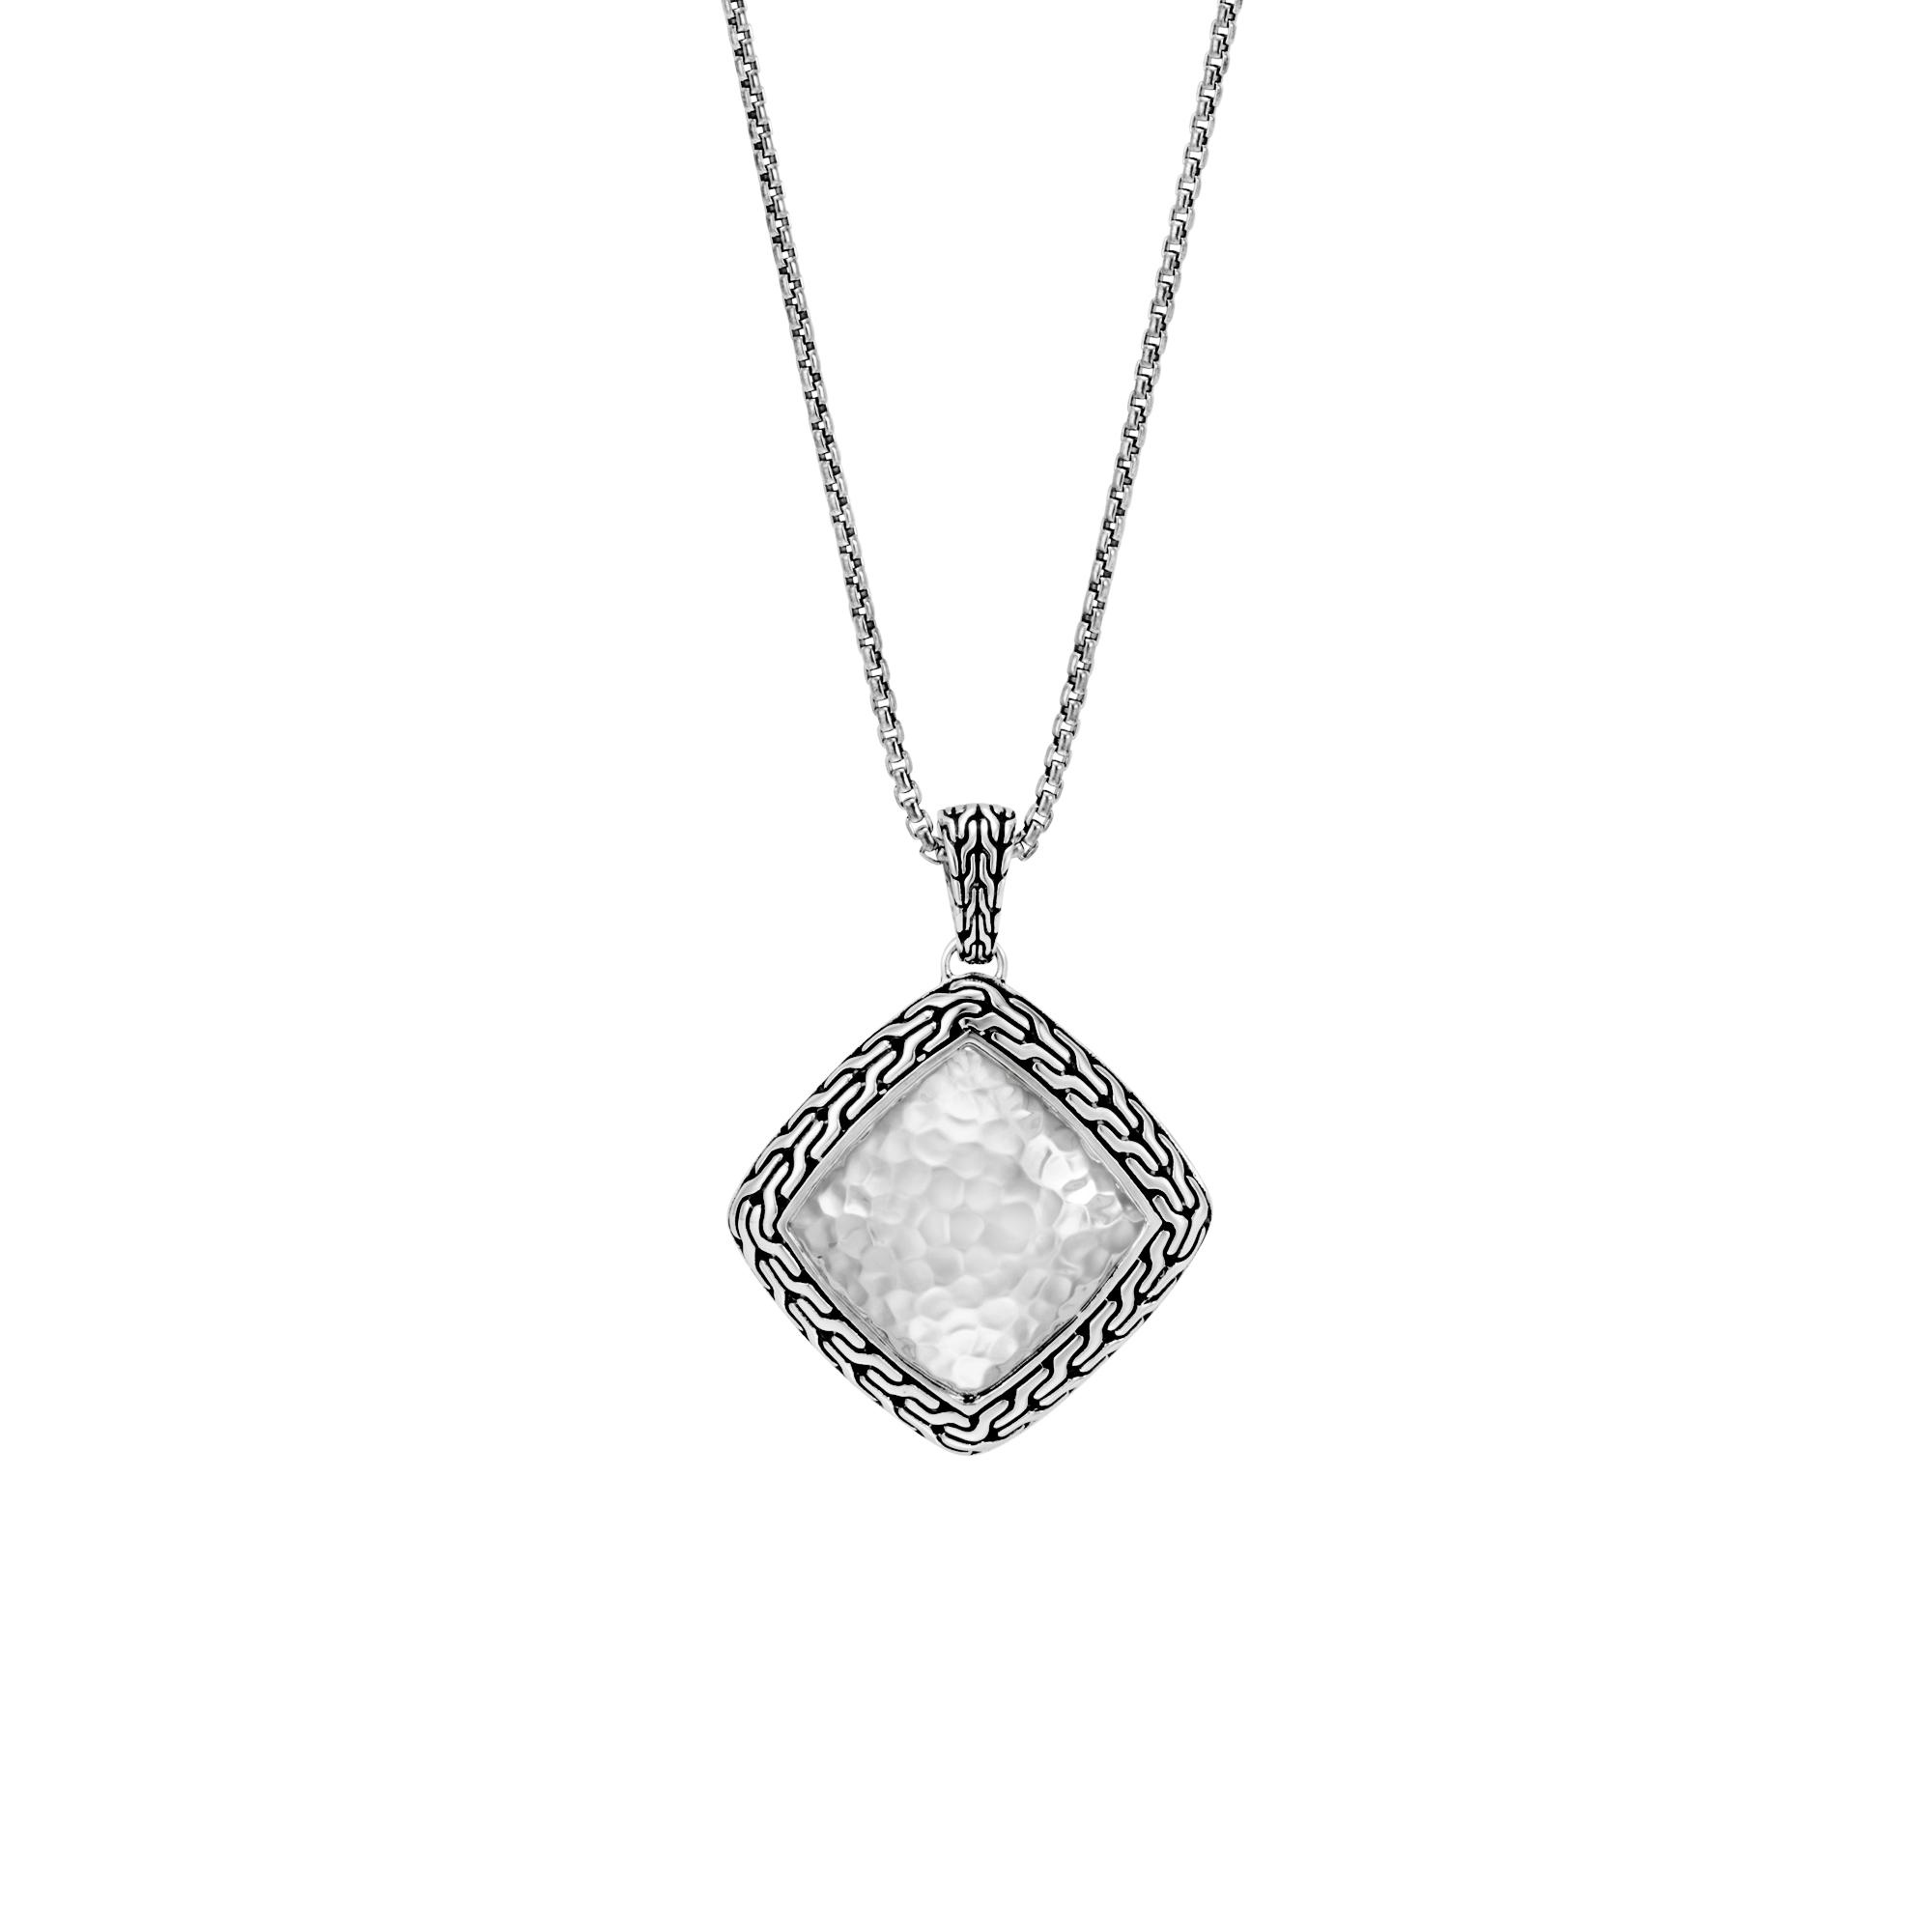 Hammered Classic Chain Pendant Necklace